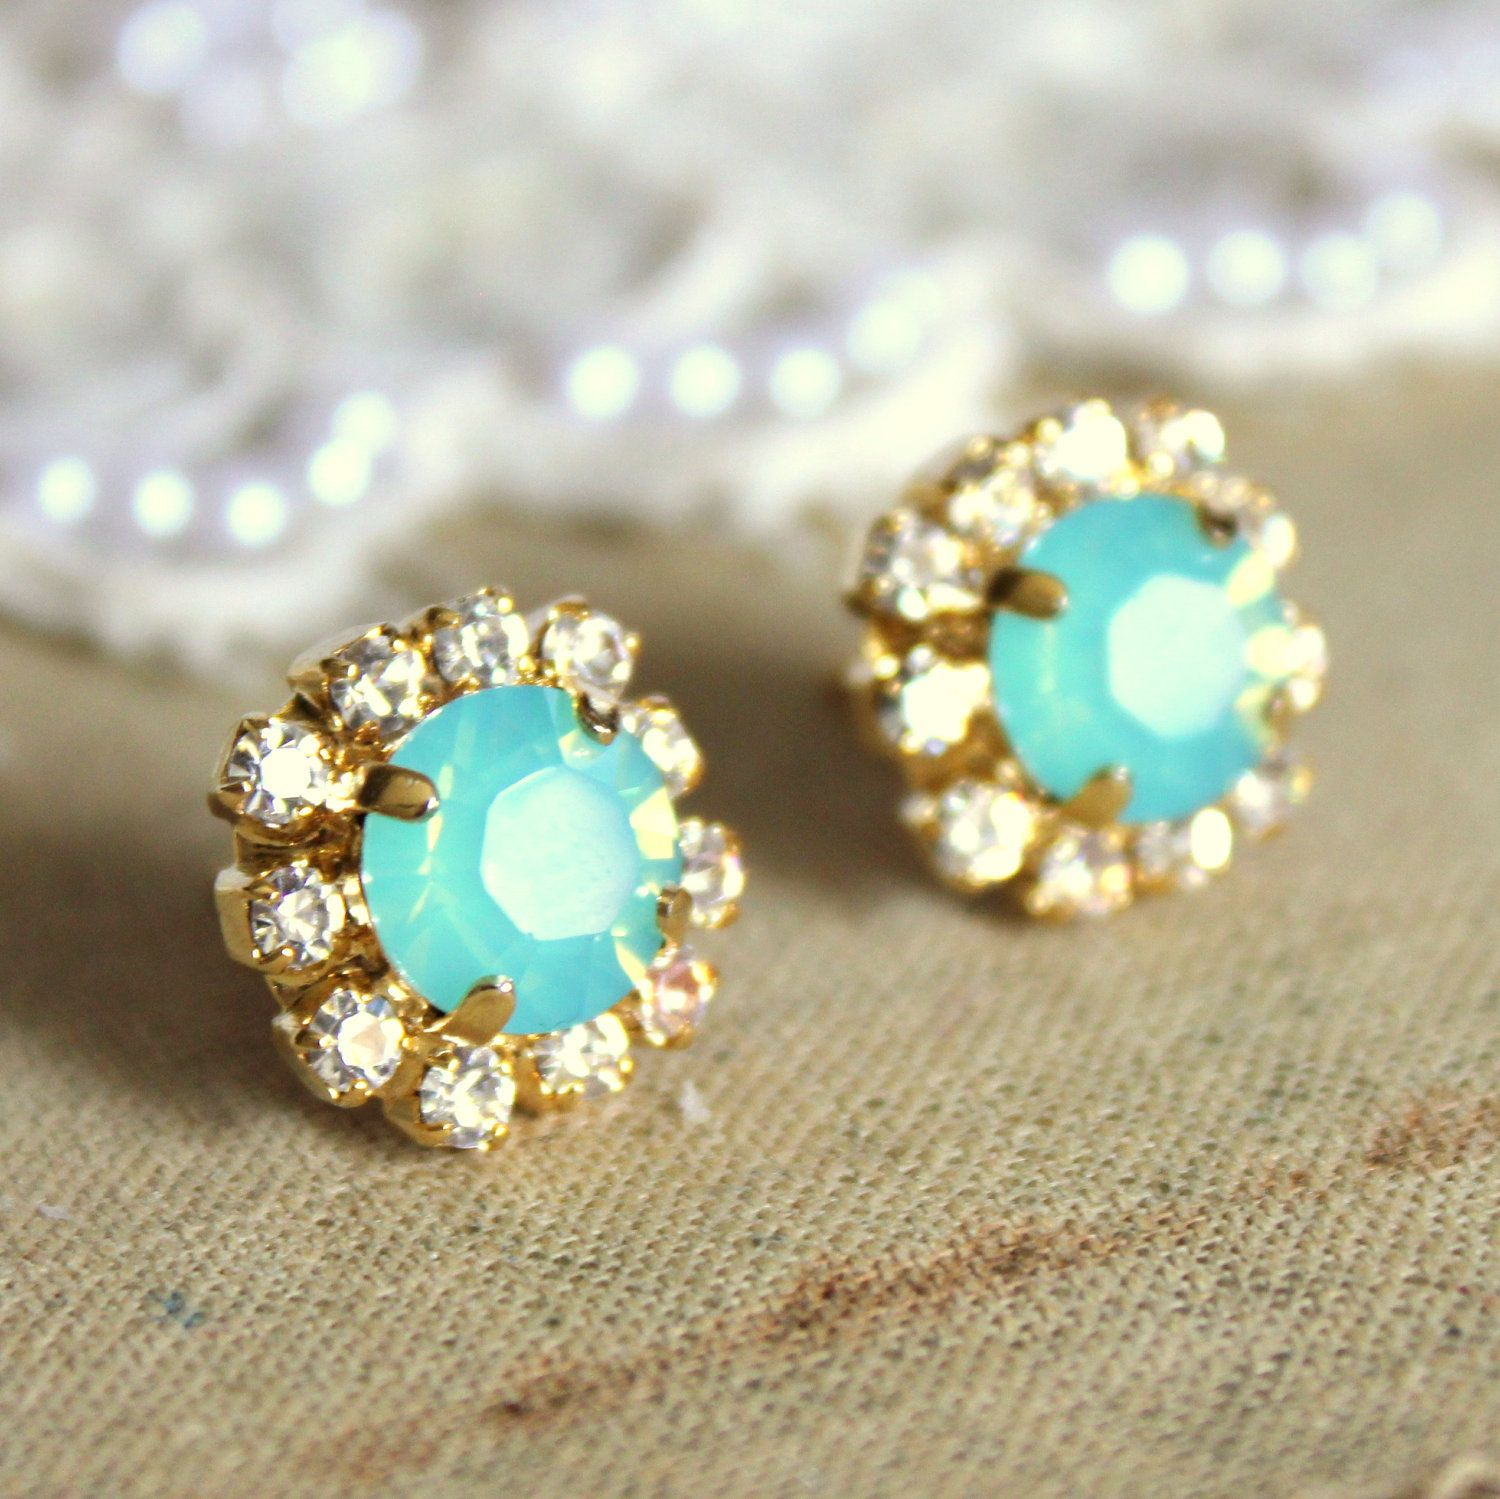 Crystal Stud Mint Earring 14k Plated Gold Post Earrings Real Swarovski Rhinestones 28 00 Via Etsy